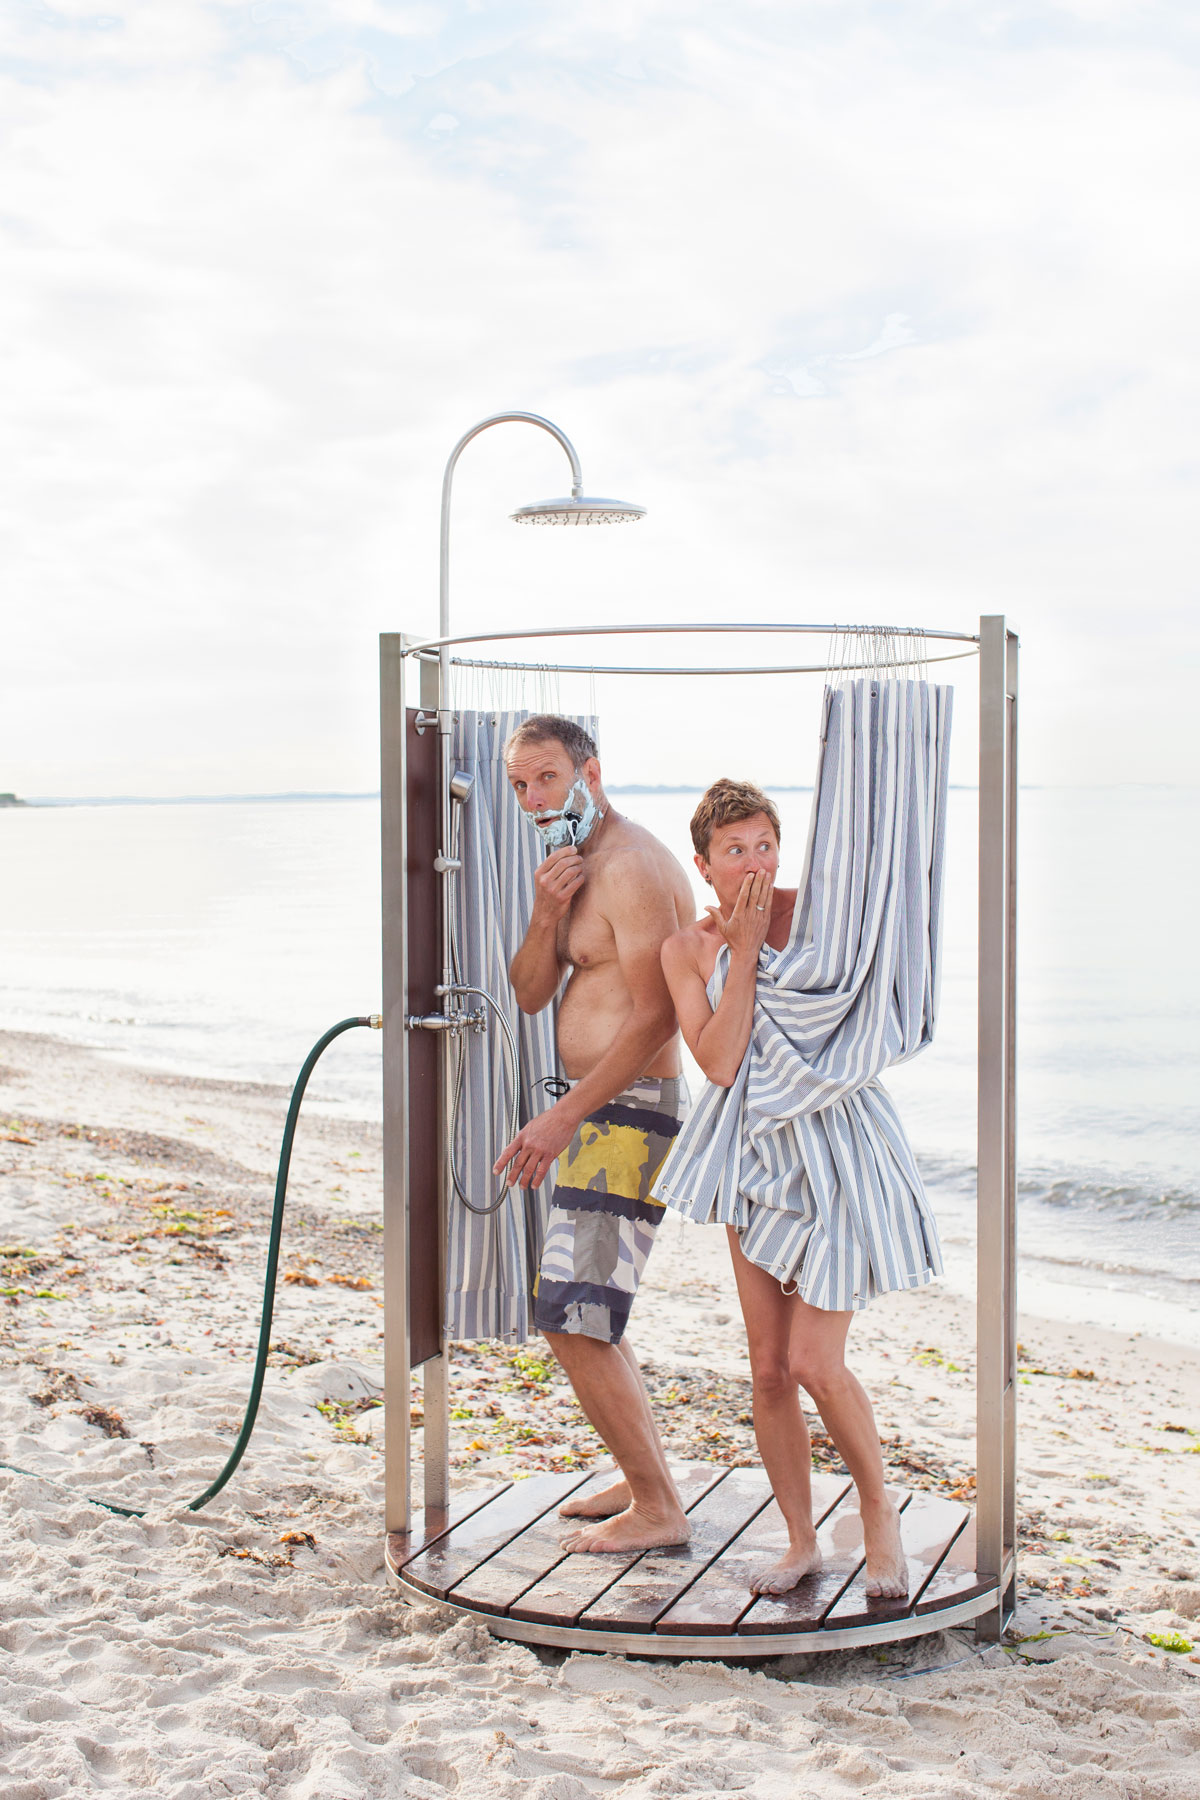 lifestyle_OutdoorShower_Oborain_LynneGraves